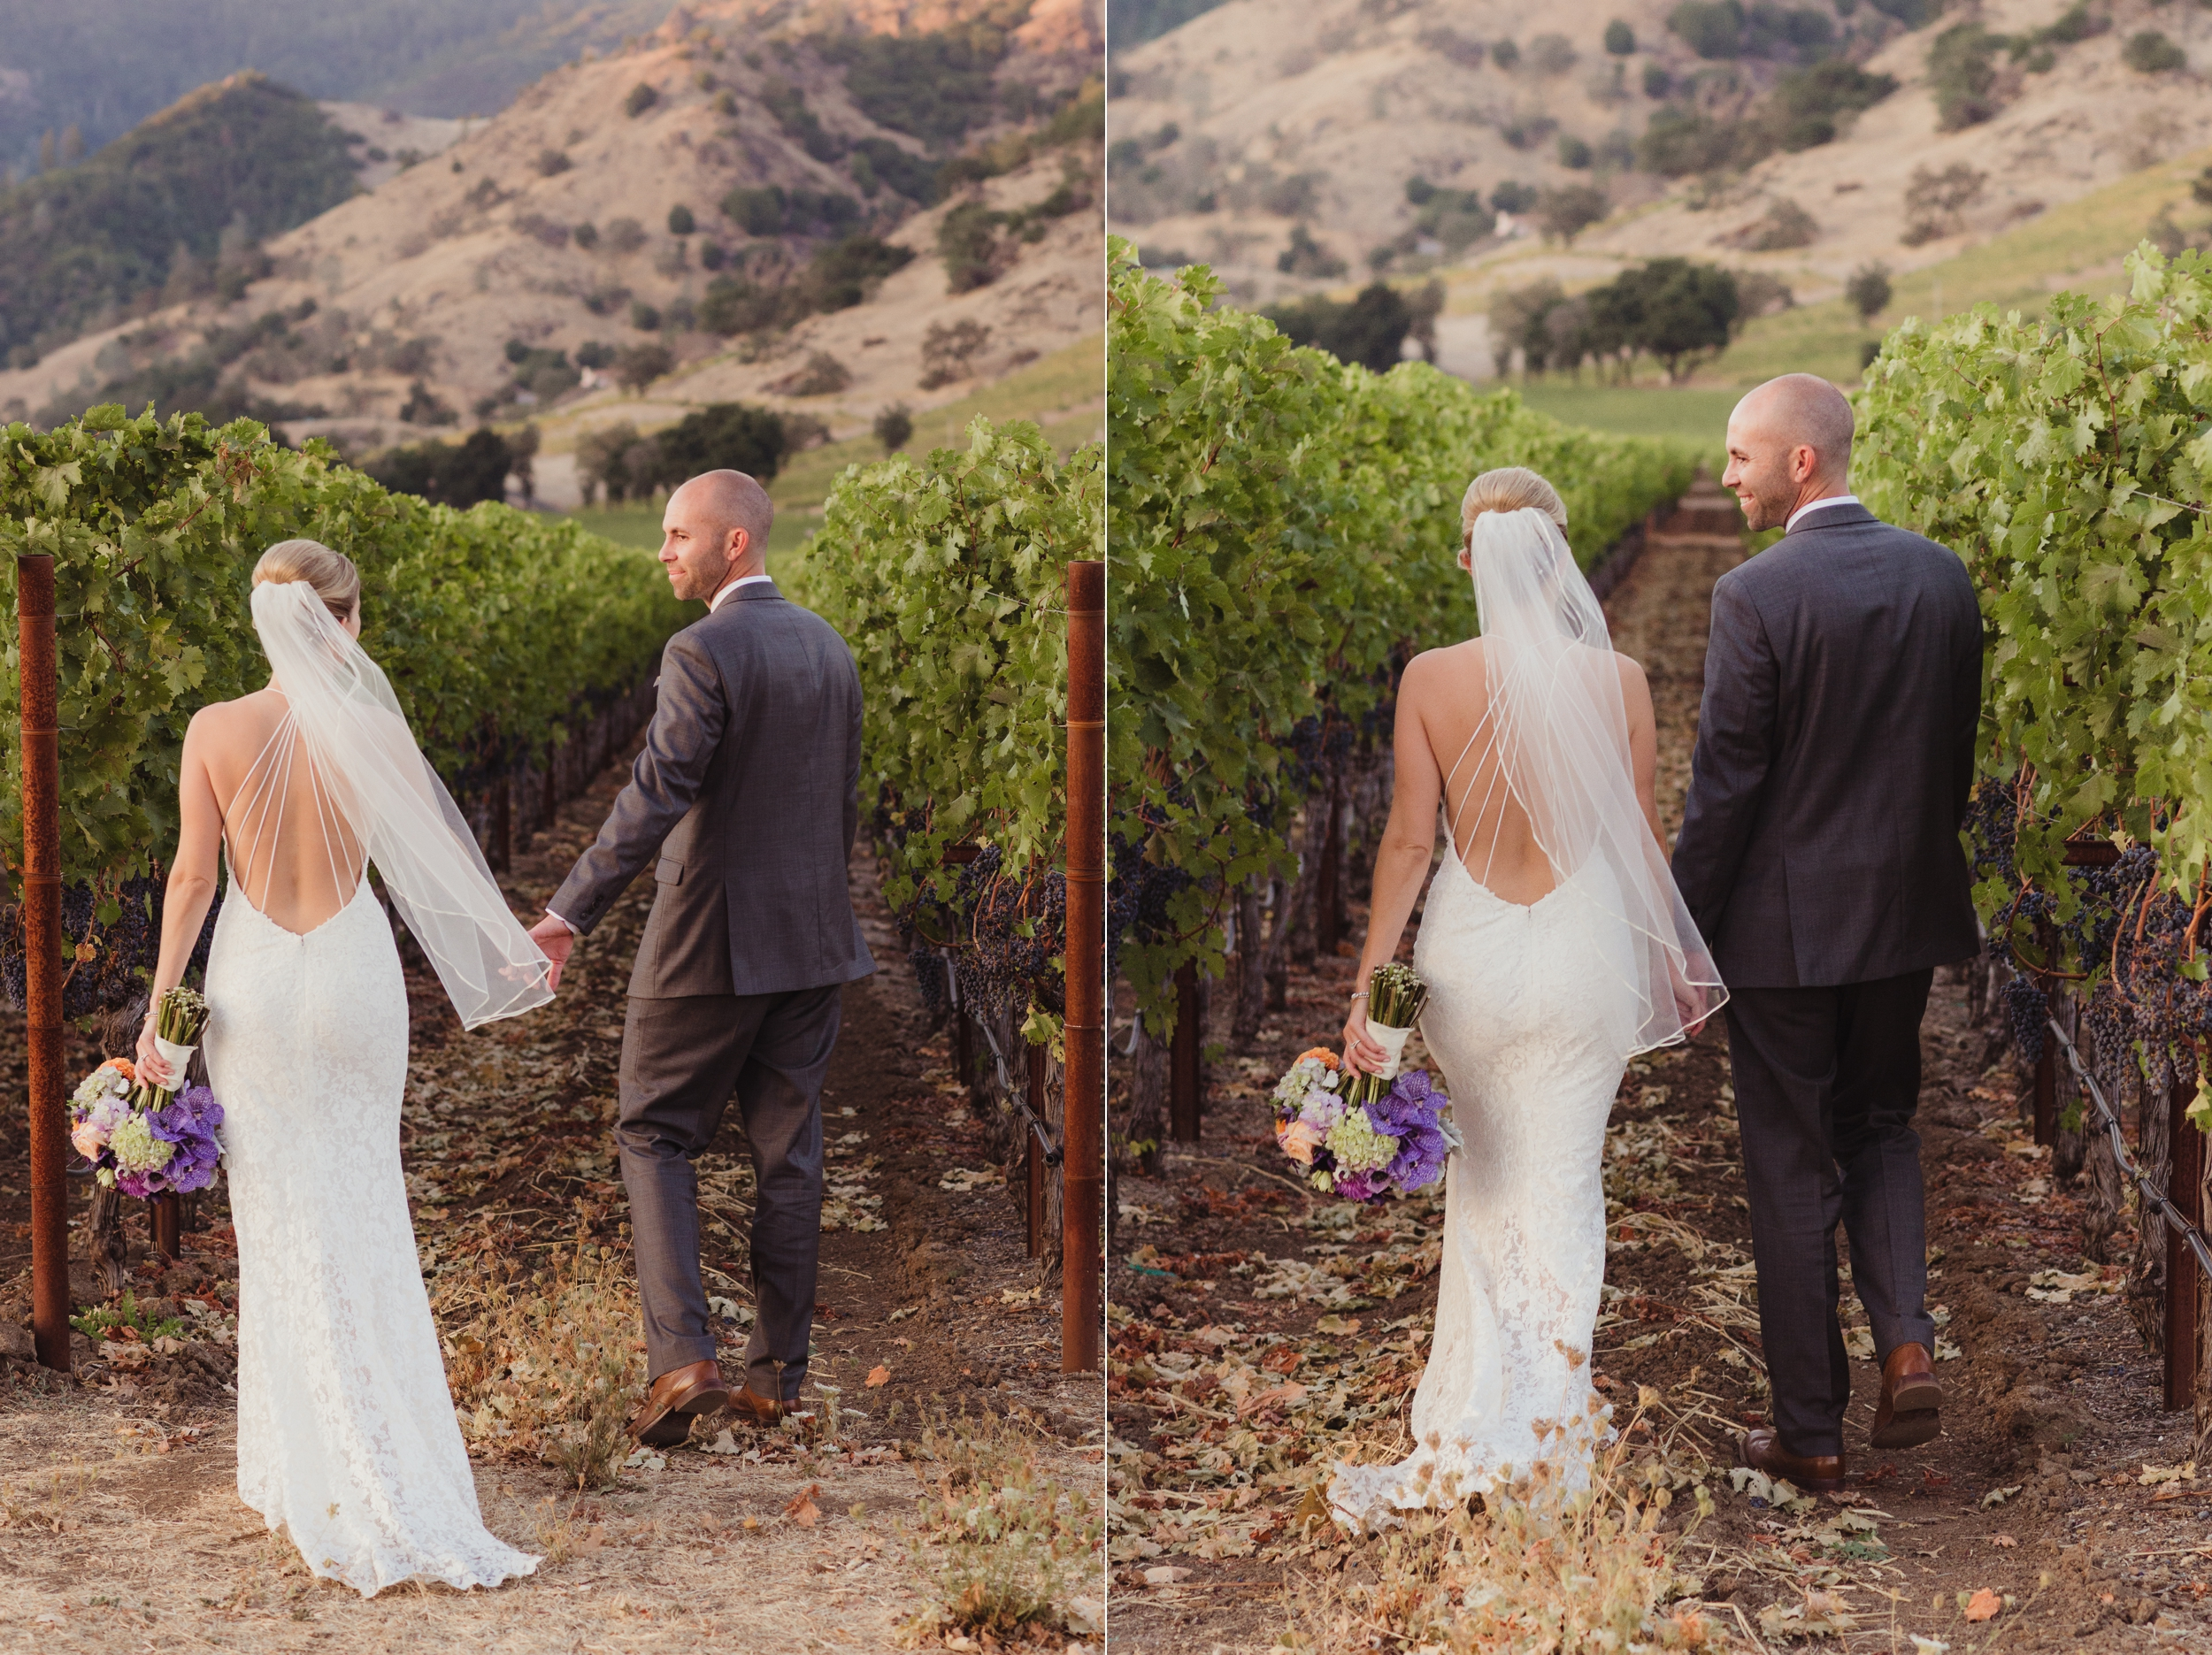 59-wine-country-calistoga-wedding-vivianchen-554_WEB.jpg